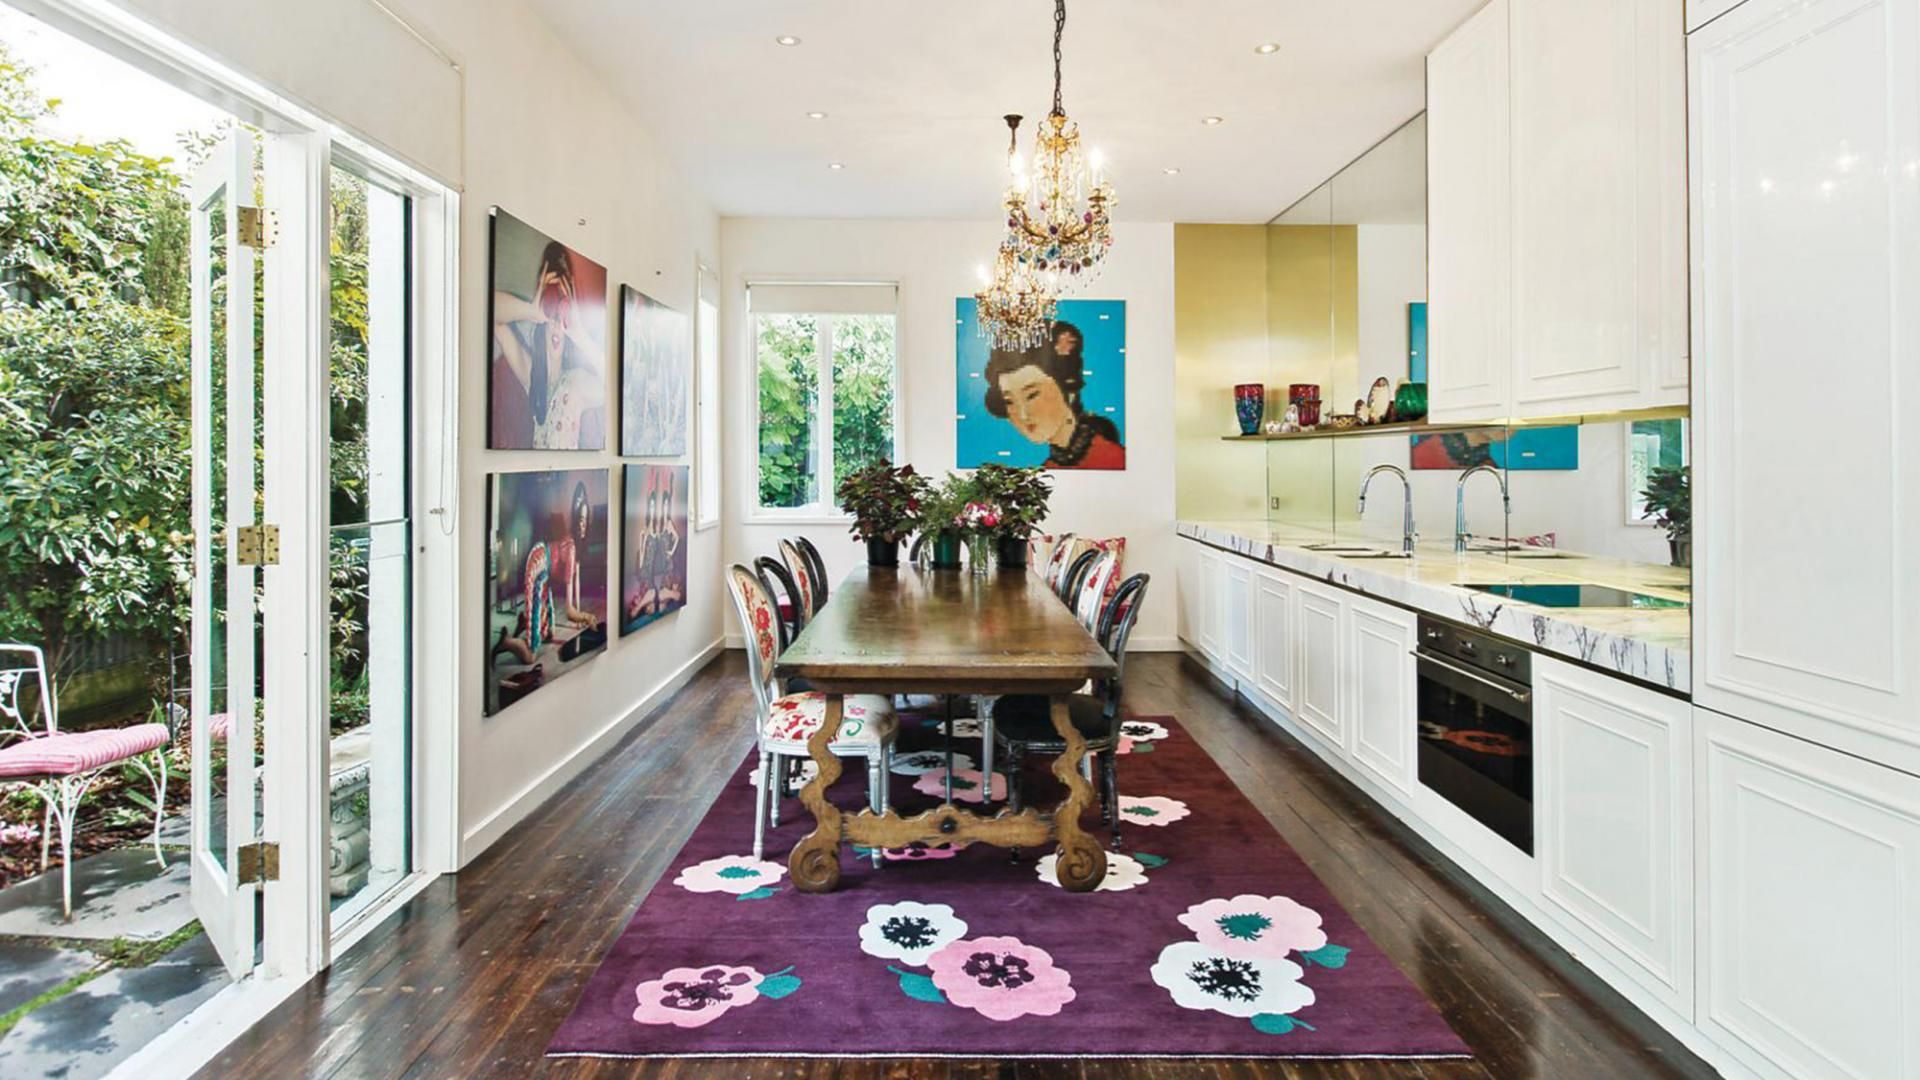 3 bedroom house interior design designer alannah hill to sell her umini versaillesu home in st kilda